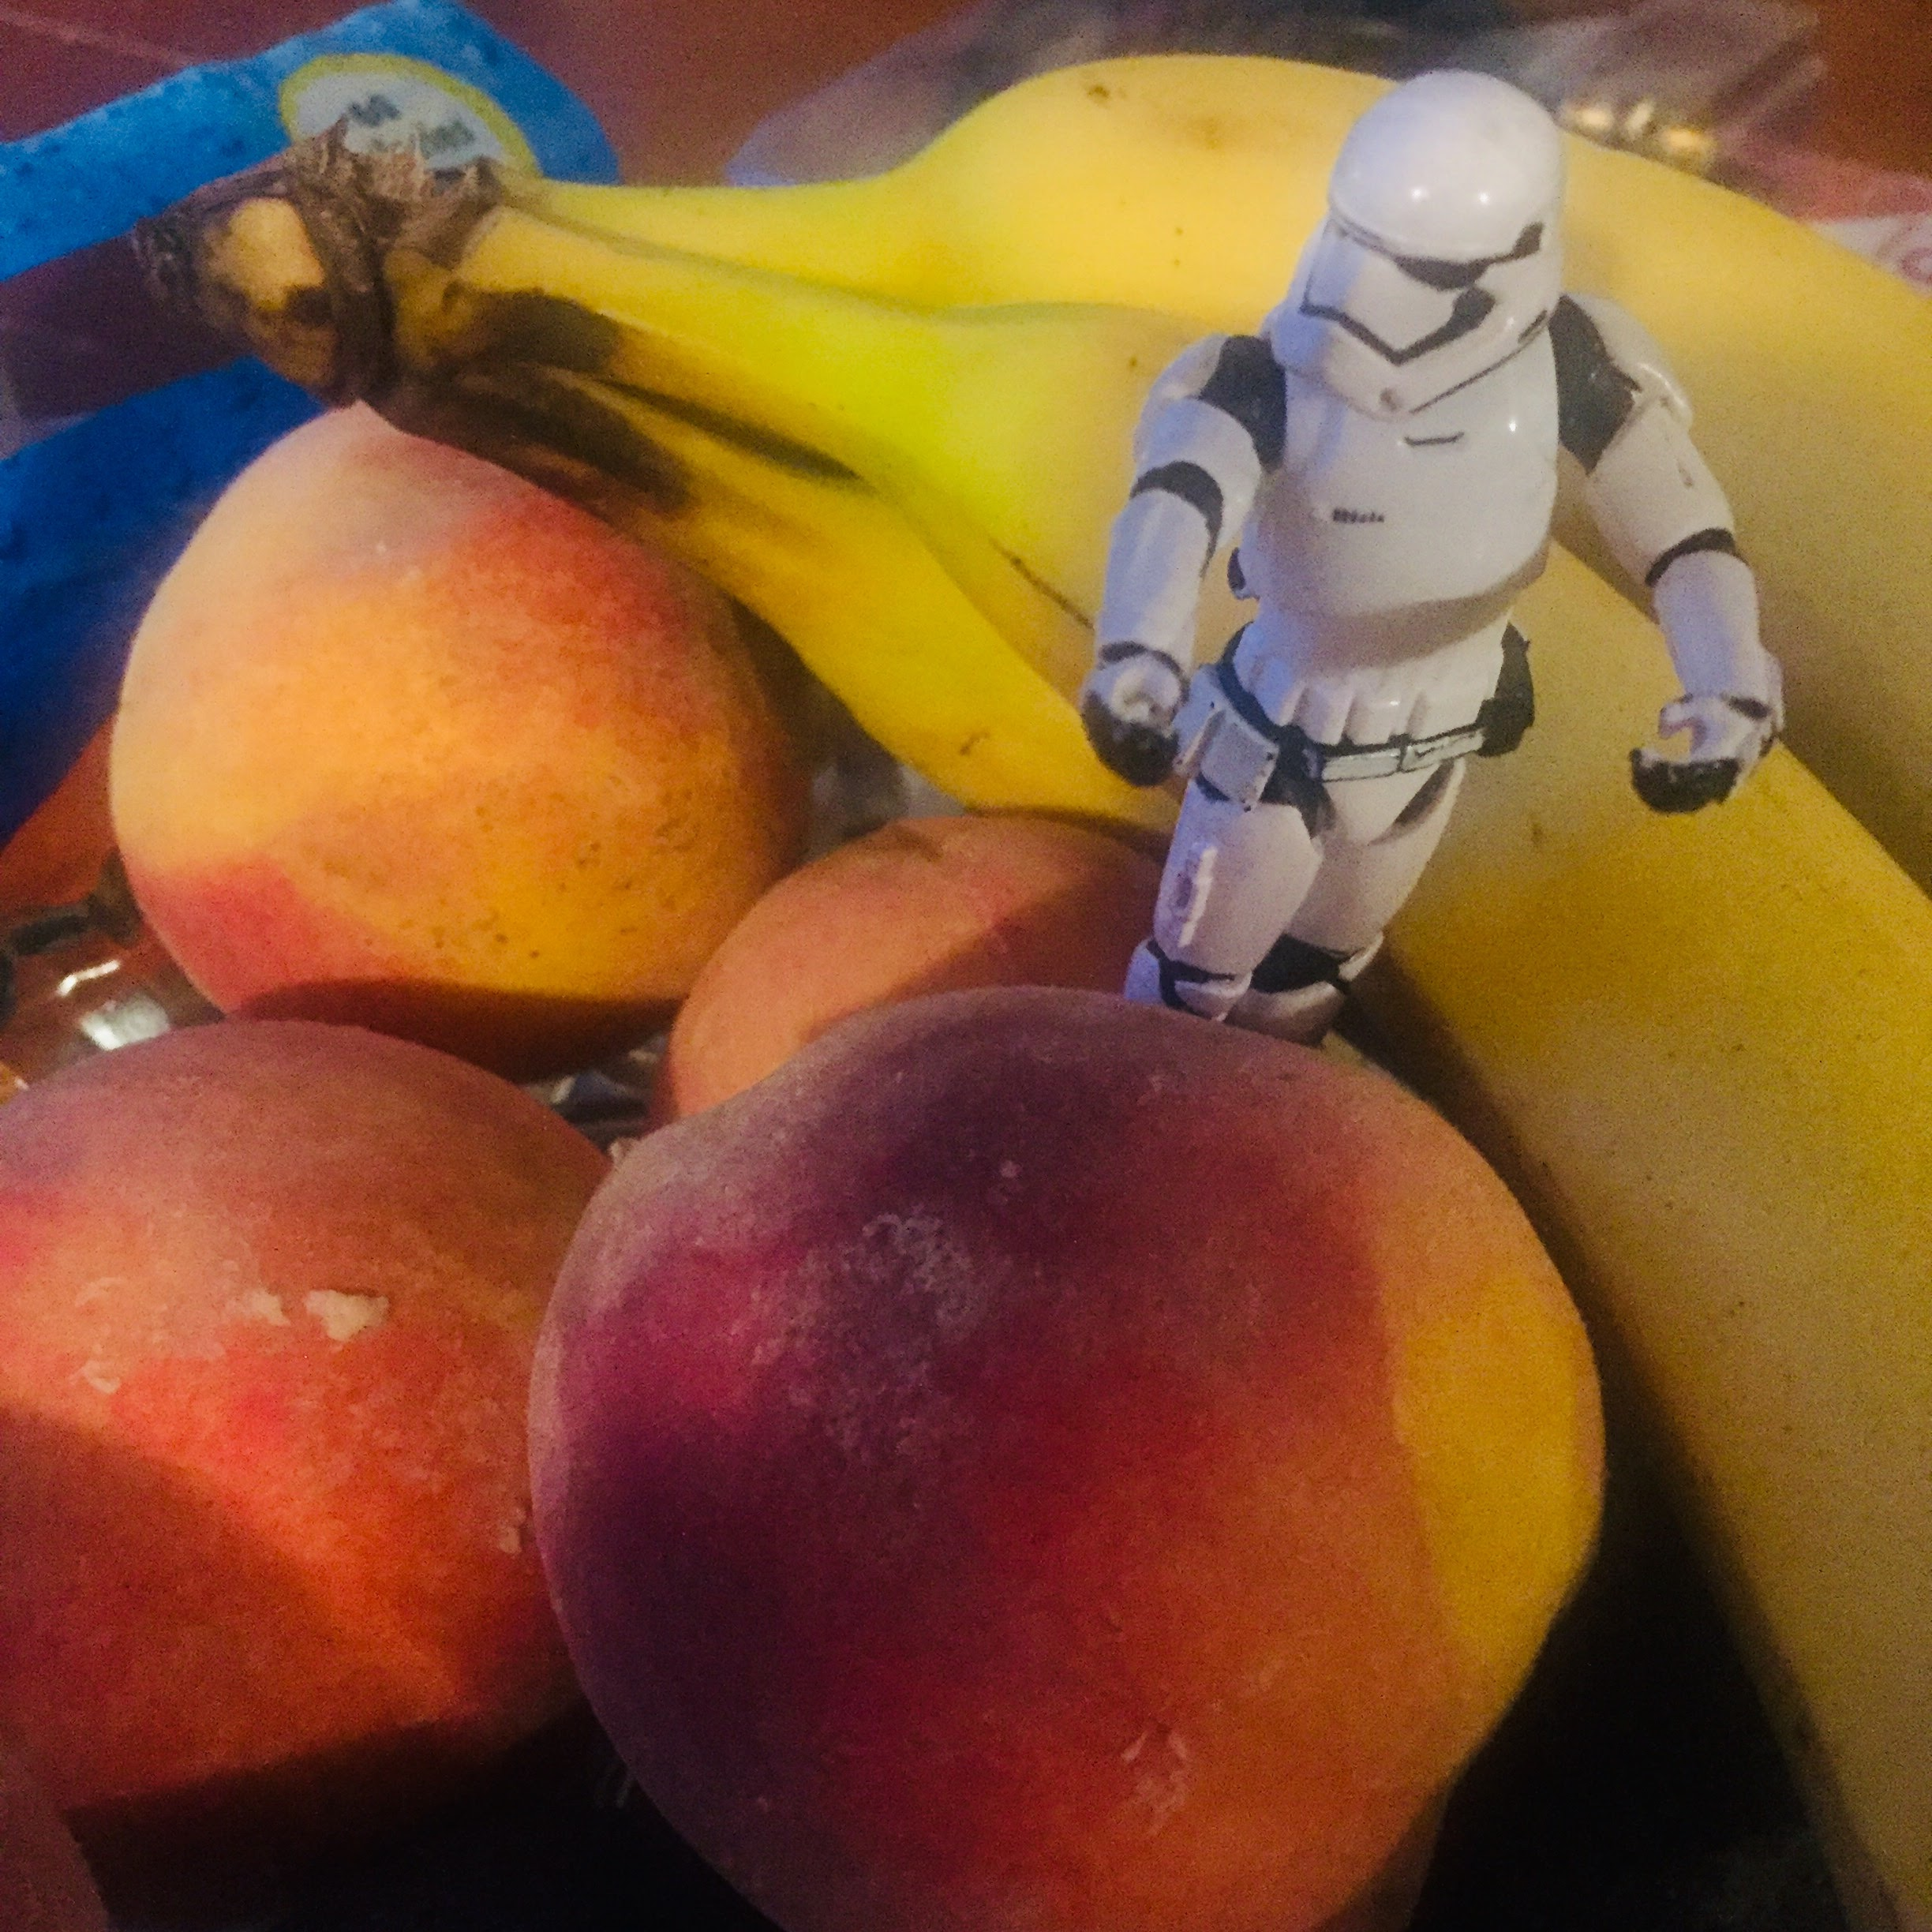 Stormtrooper in the midst of a fruity world.